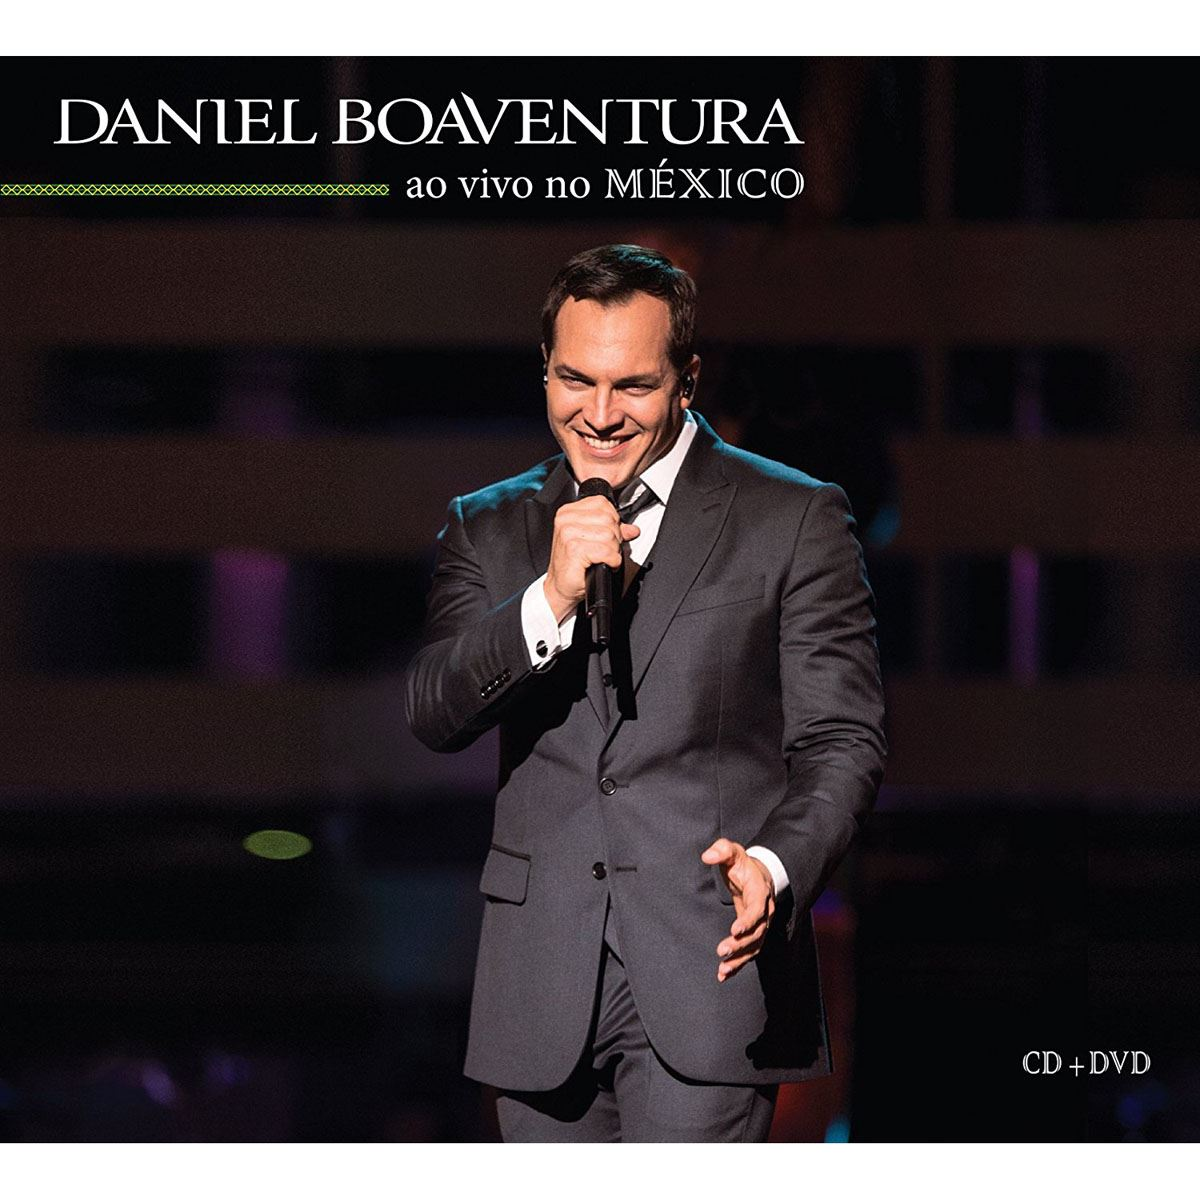 Cd/dvd daniel boaventura-ao vivo no  - Sanborns